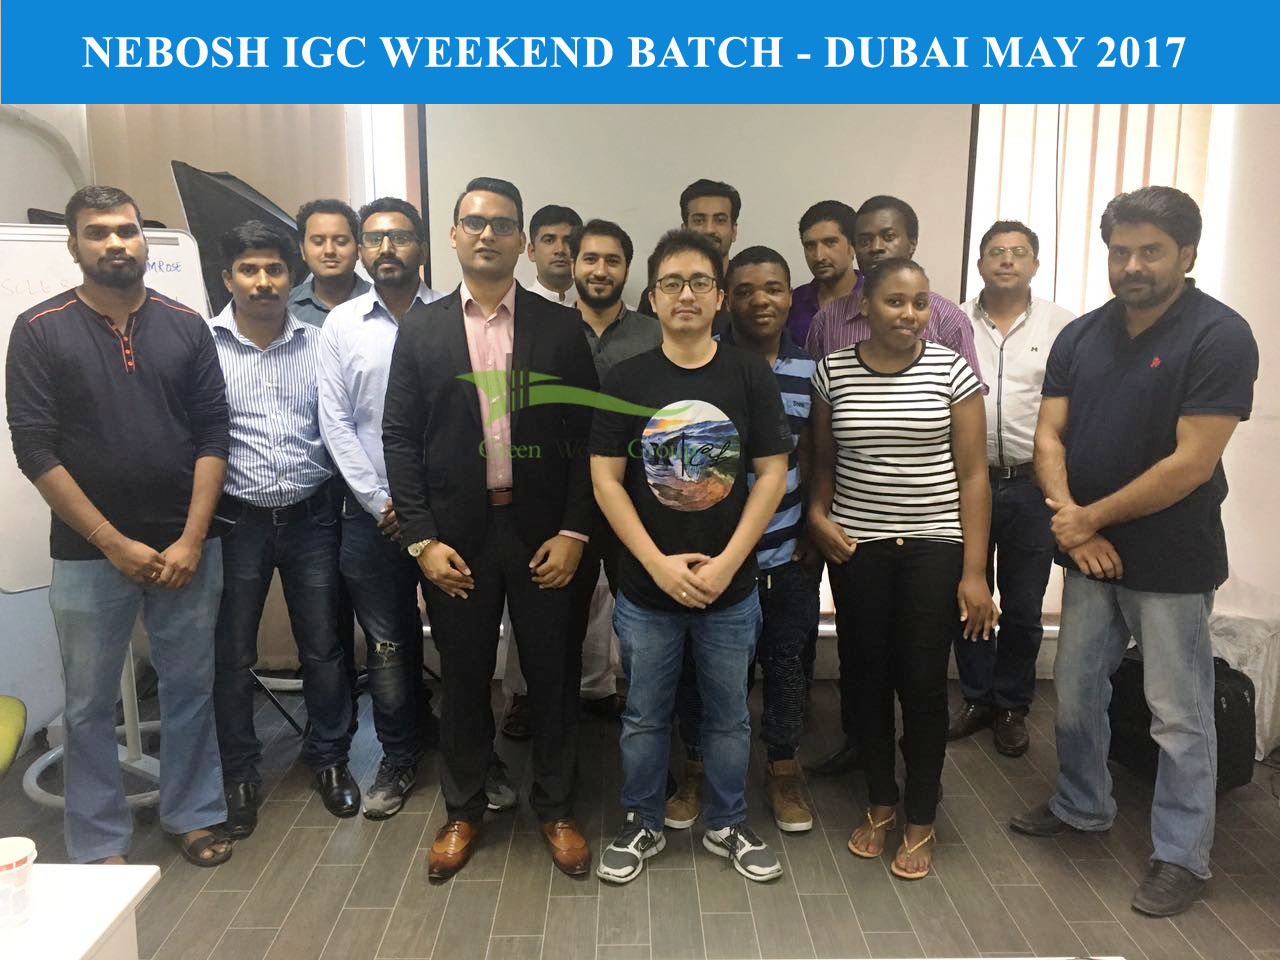 GWG - DXB - NEBOSH IGC WEEKEND BATCH - MAY 2017 - TUTOR Mr. SHAMROSE